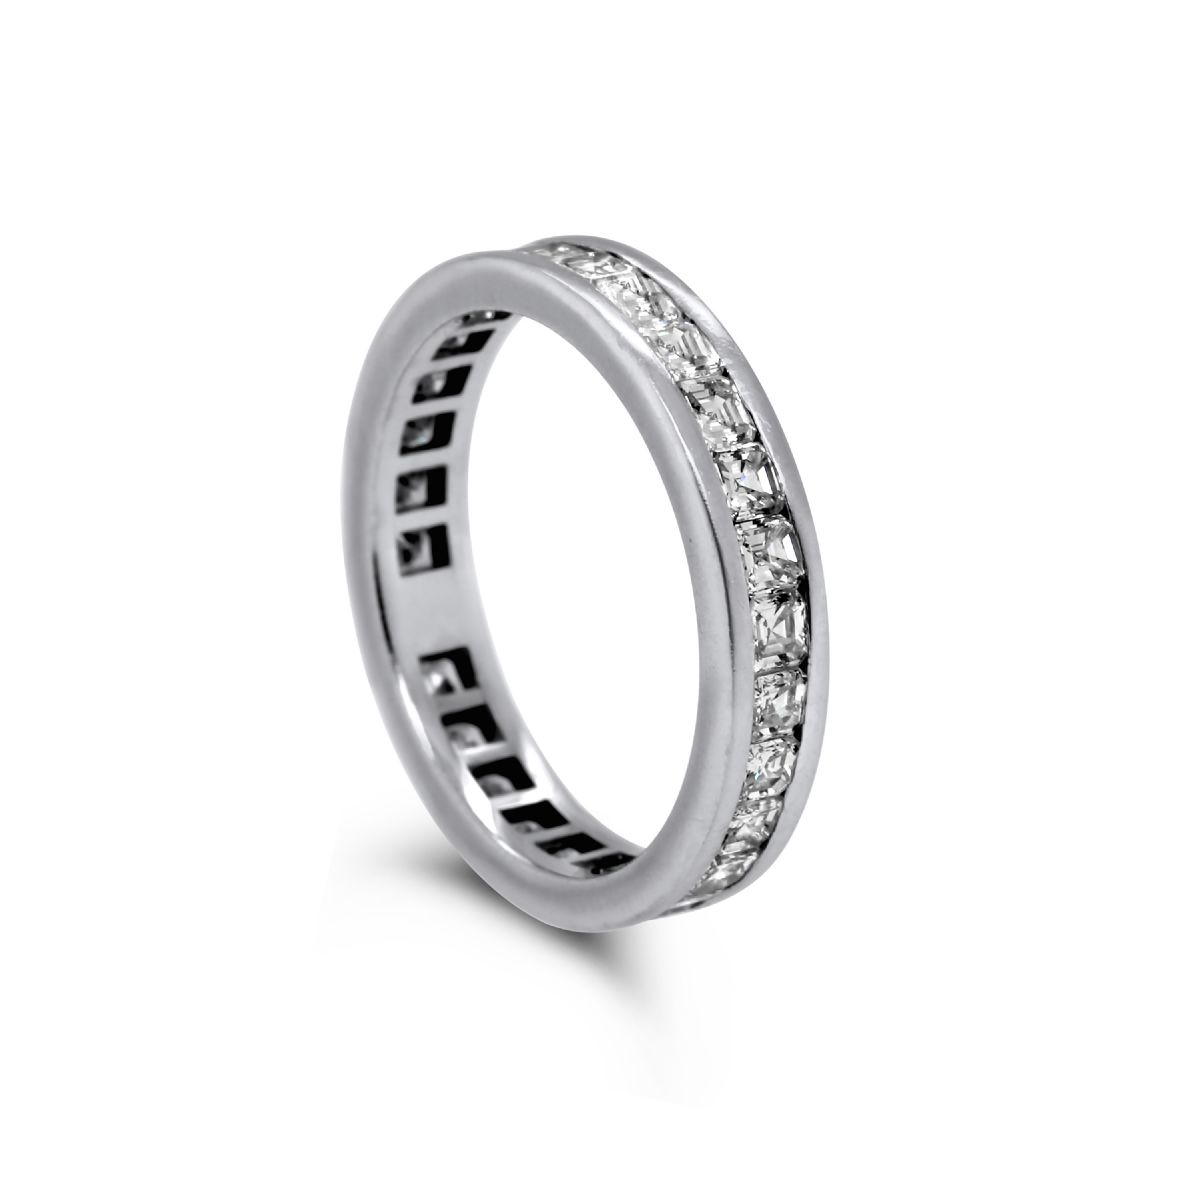 14k white gold and asscher-cut diamond full eternity band -  Ring